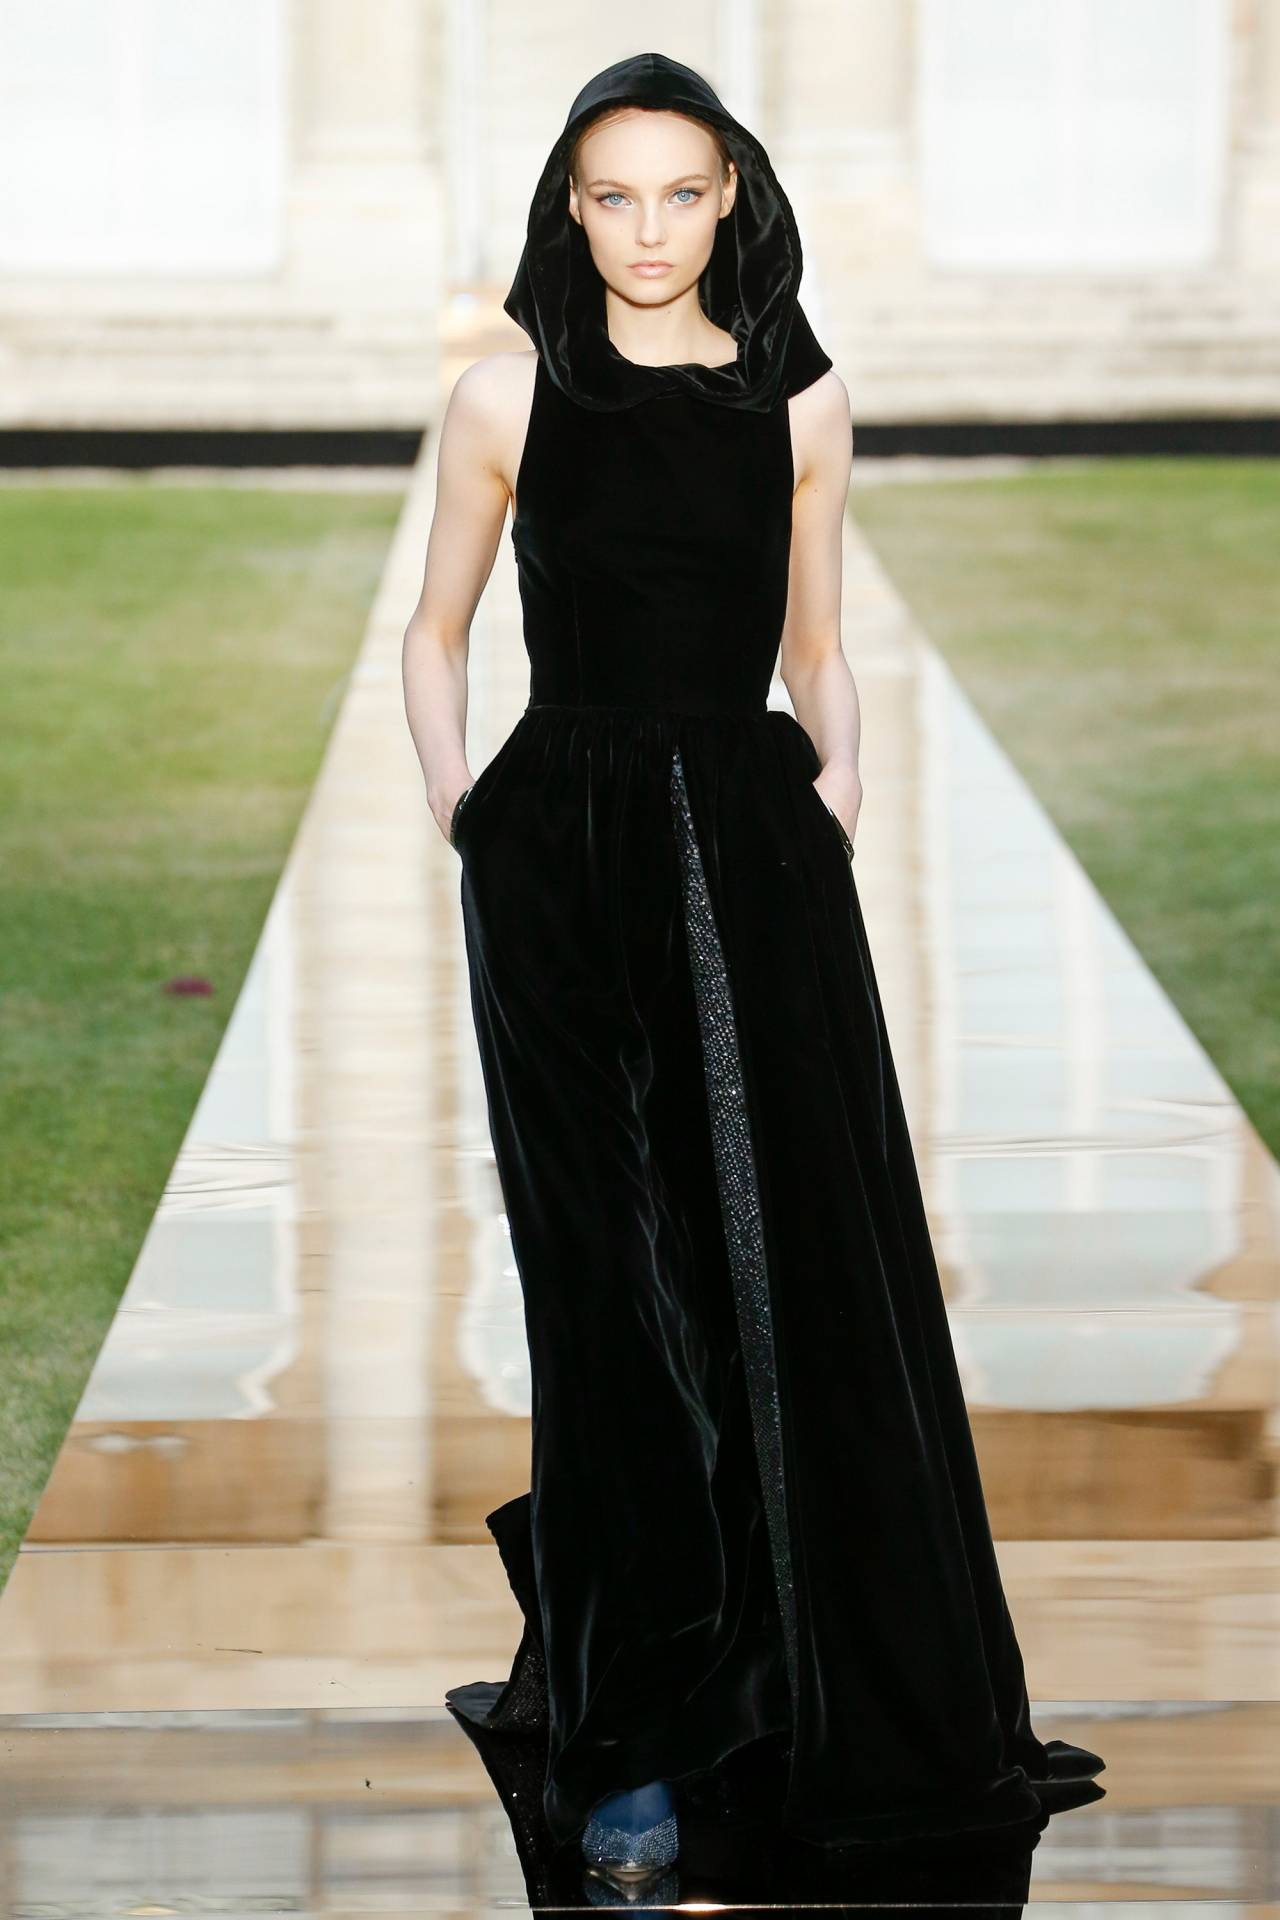 Fran Summers at Givenchy F/W18 Couture #fran summers#velvet#black velvet#hoods#capes#cloaks#dresses #Givenchy F/W18 Couture #givenchy#givenchy couture #clare waight keller givenchy  #clare waight keller #f/w18 couture